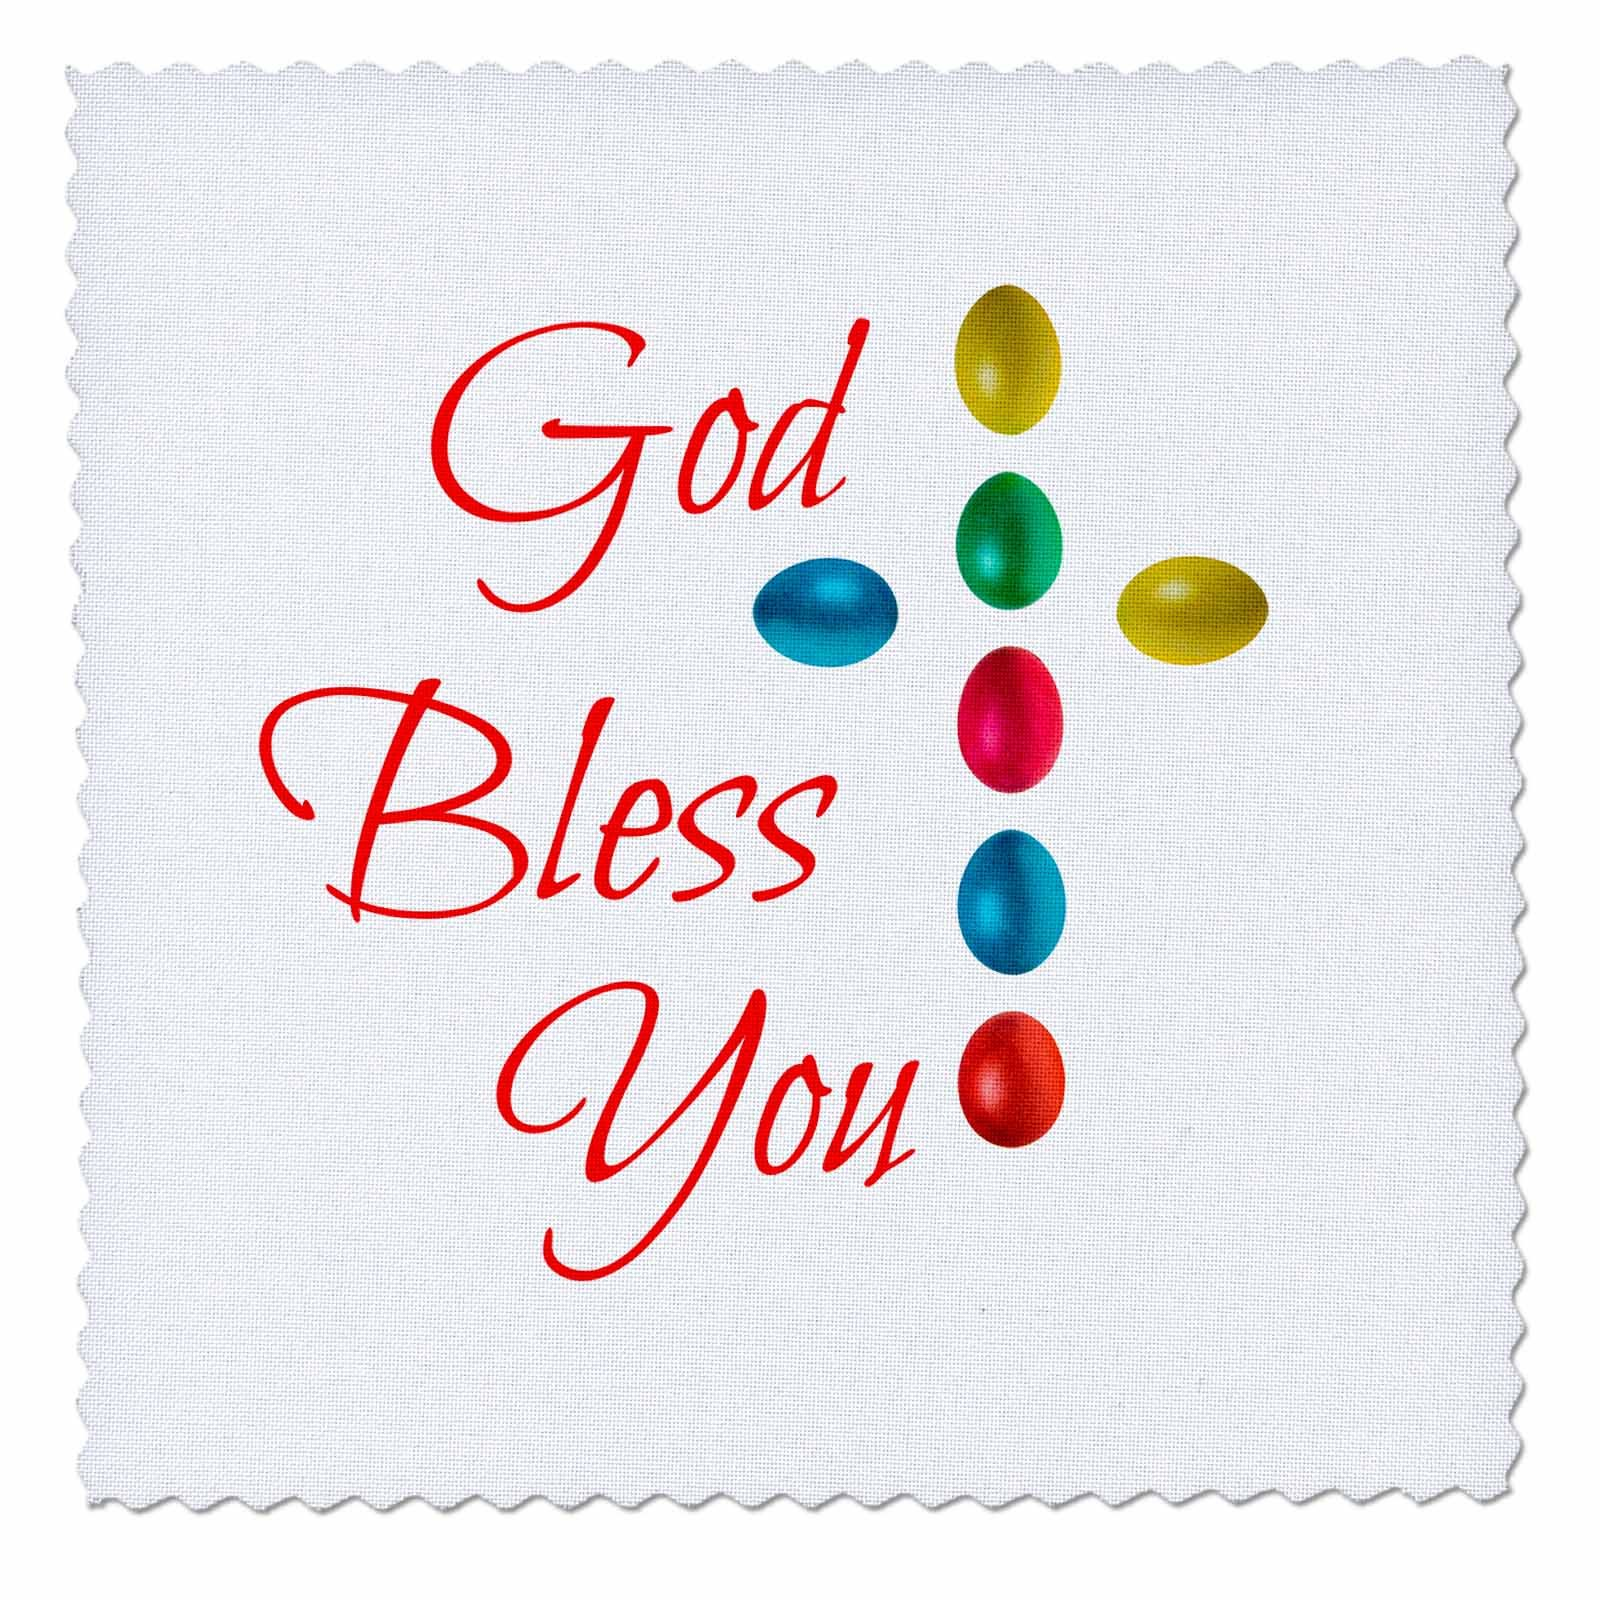 3dRose Alexis Design - Holidays Easter - God bless you text and cross of colorful Easter eggs on white - 12x12 inch quilt square (qs_271651_4)